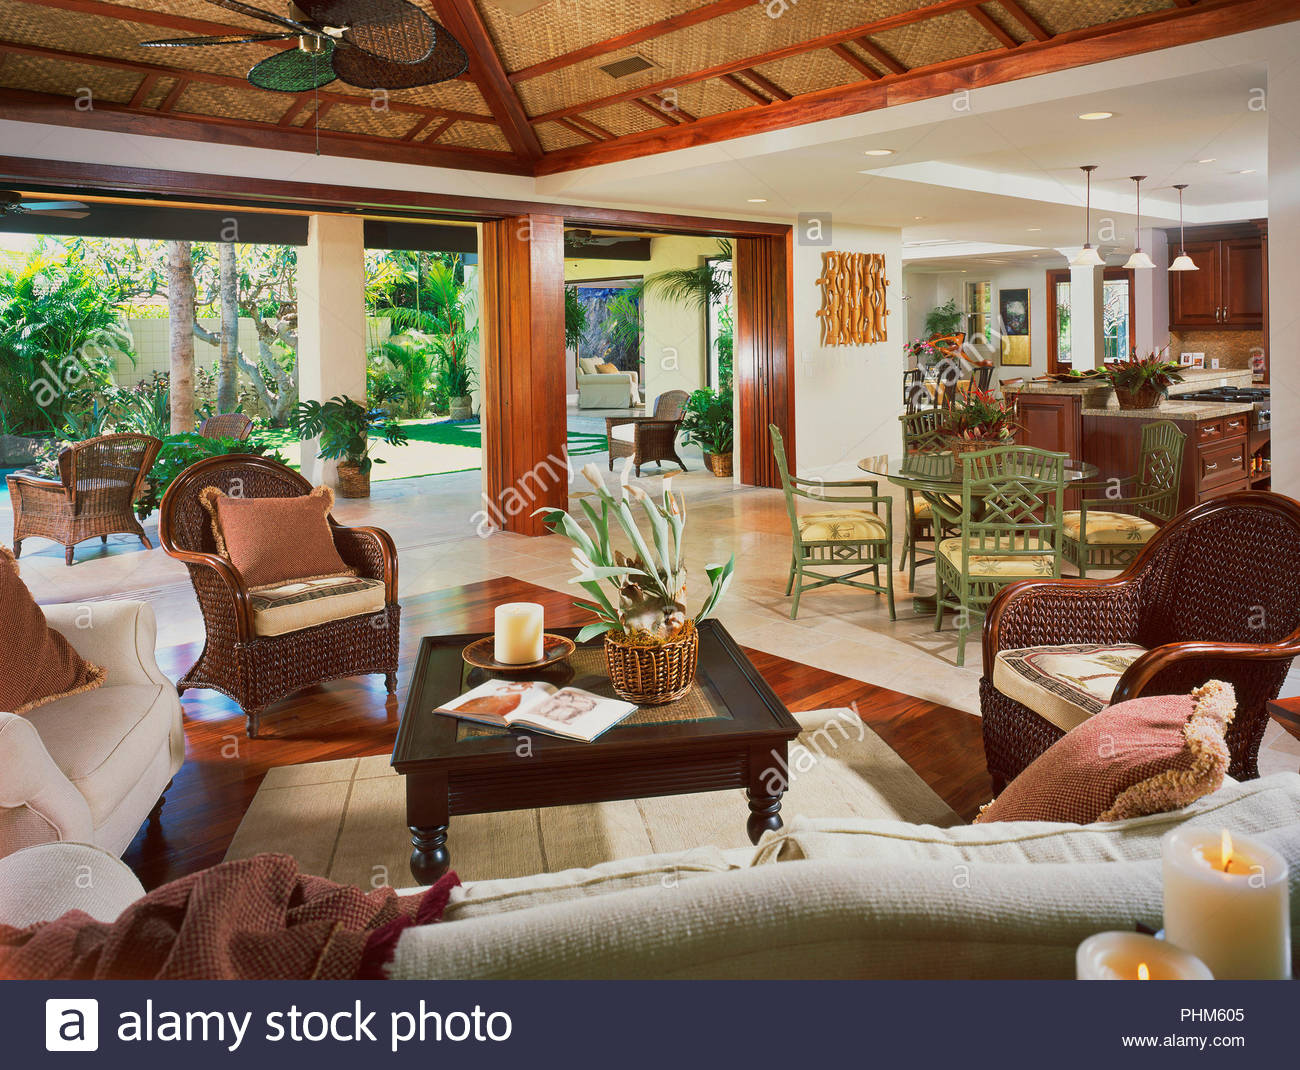 Living room with pot plant - Stock Image